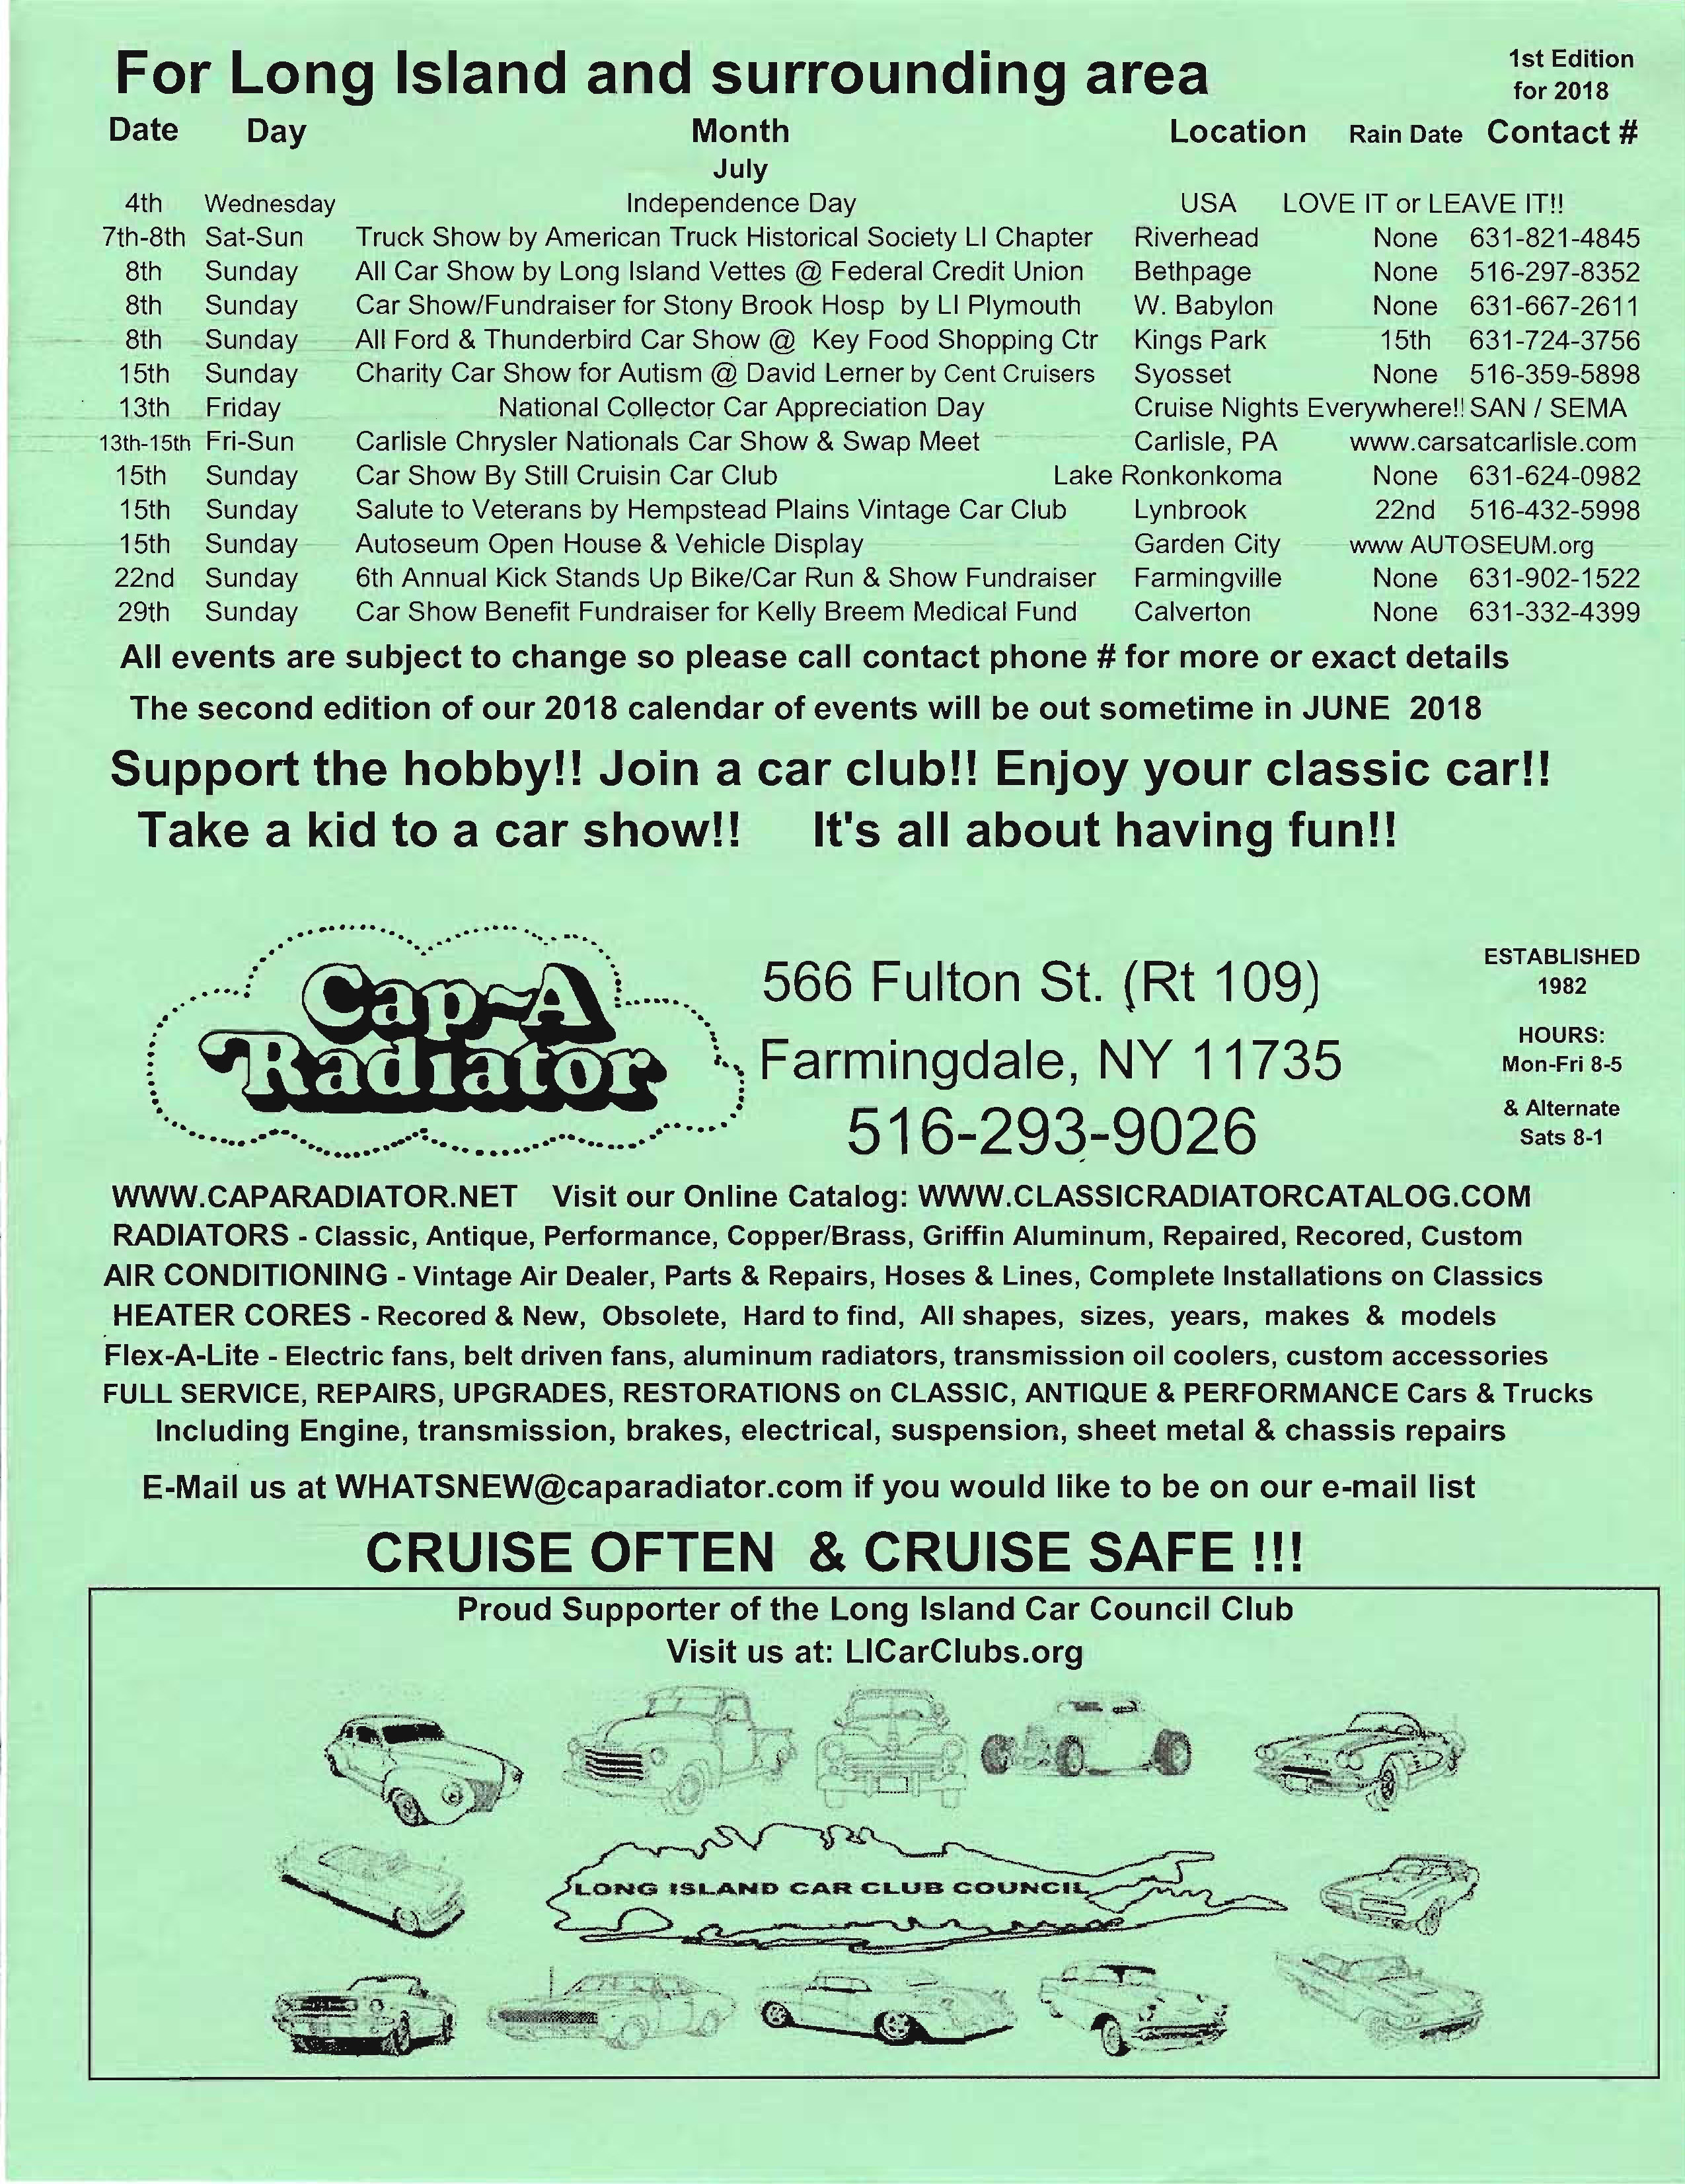 2018 Classic Car Calendar of Events First Edition through July Page 3